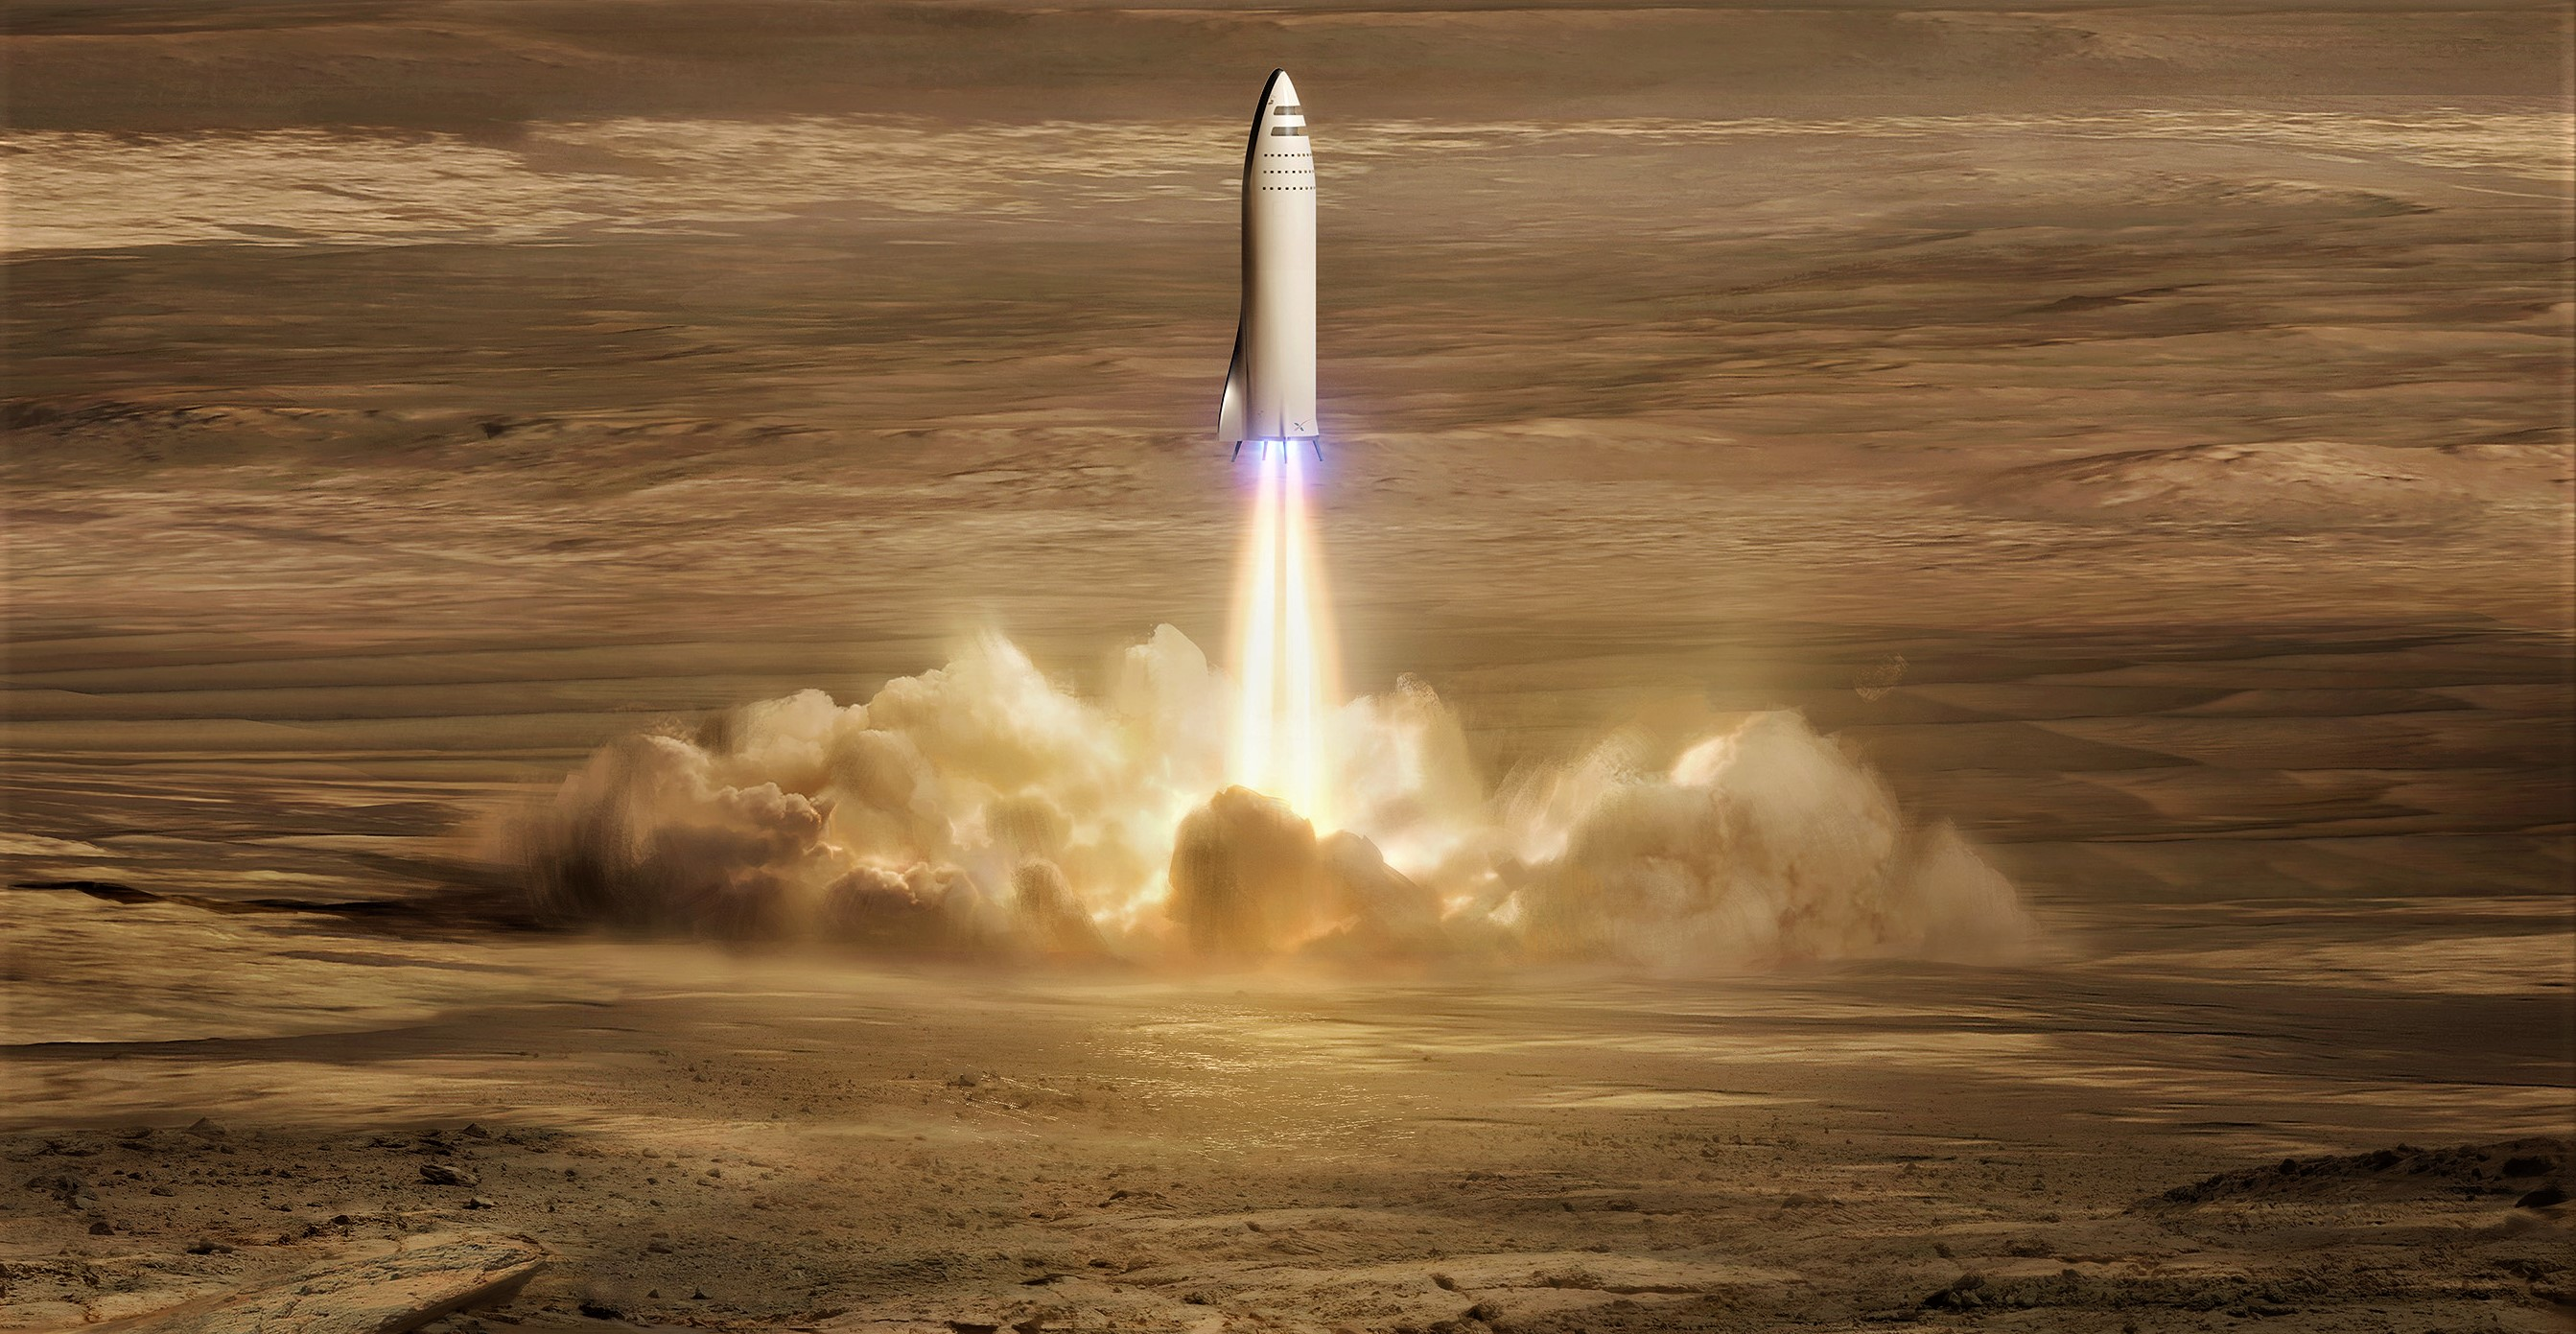 Spacex President Gwynne Shotwell Expects Bfr Spaceship Hop Tests In